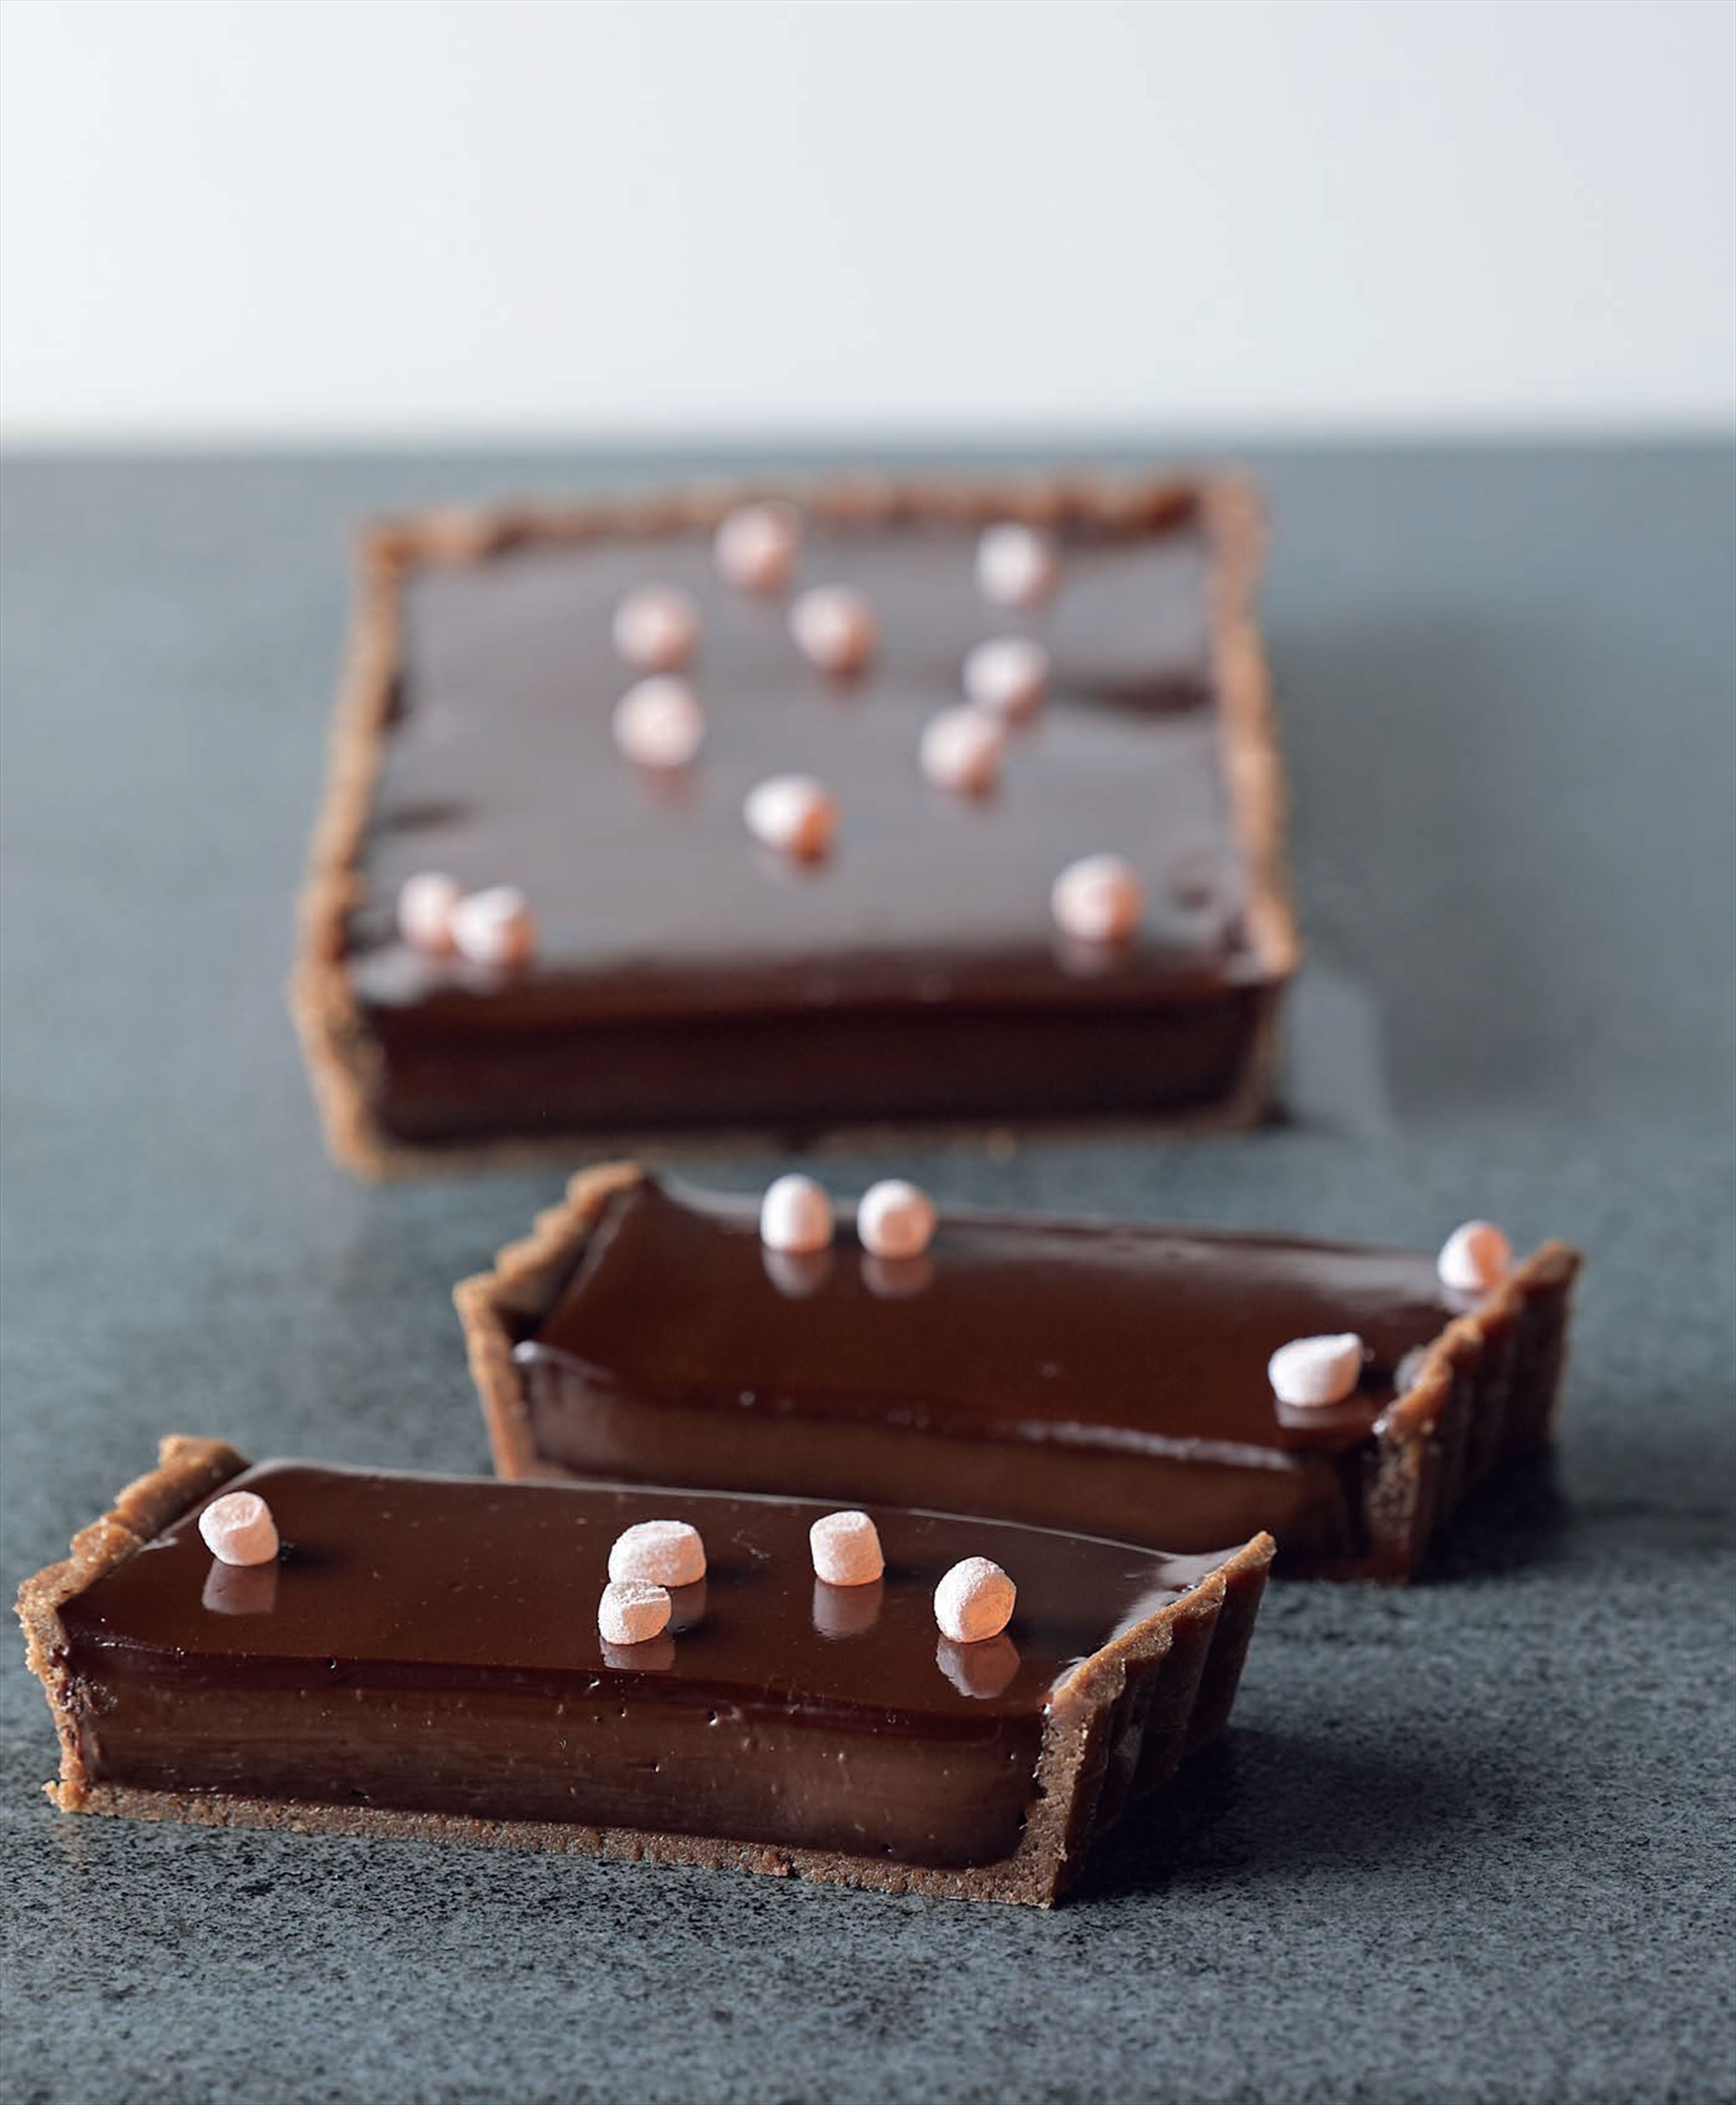 Rich chocolate and cardamom tart with Turkish delight jewels